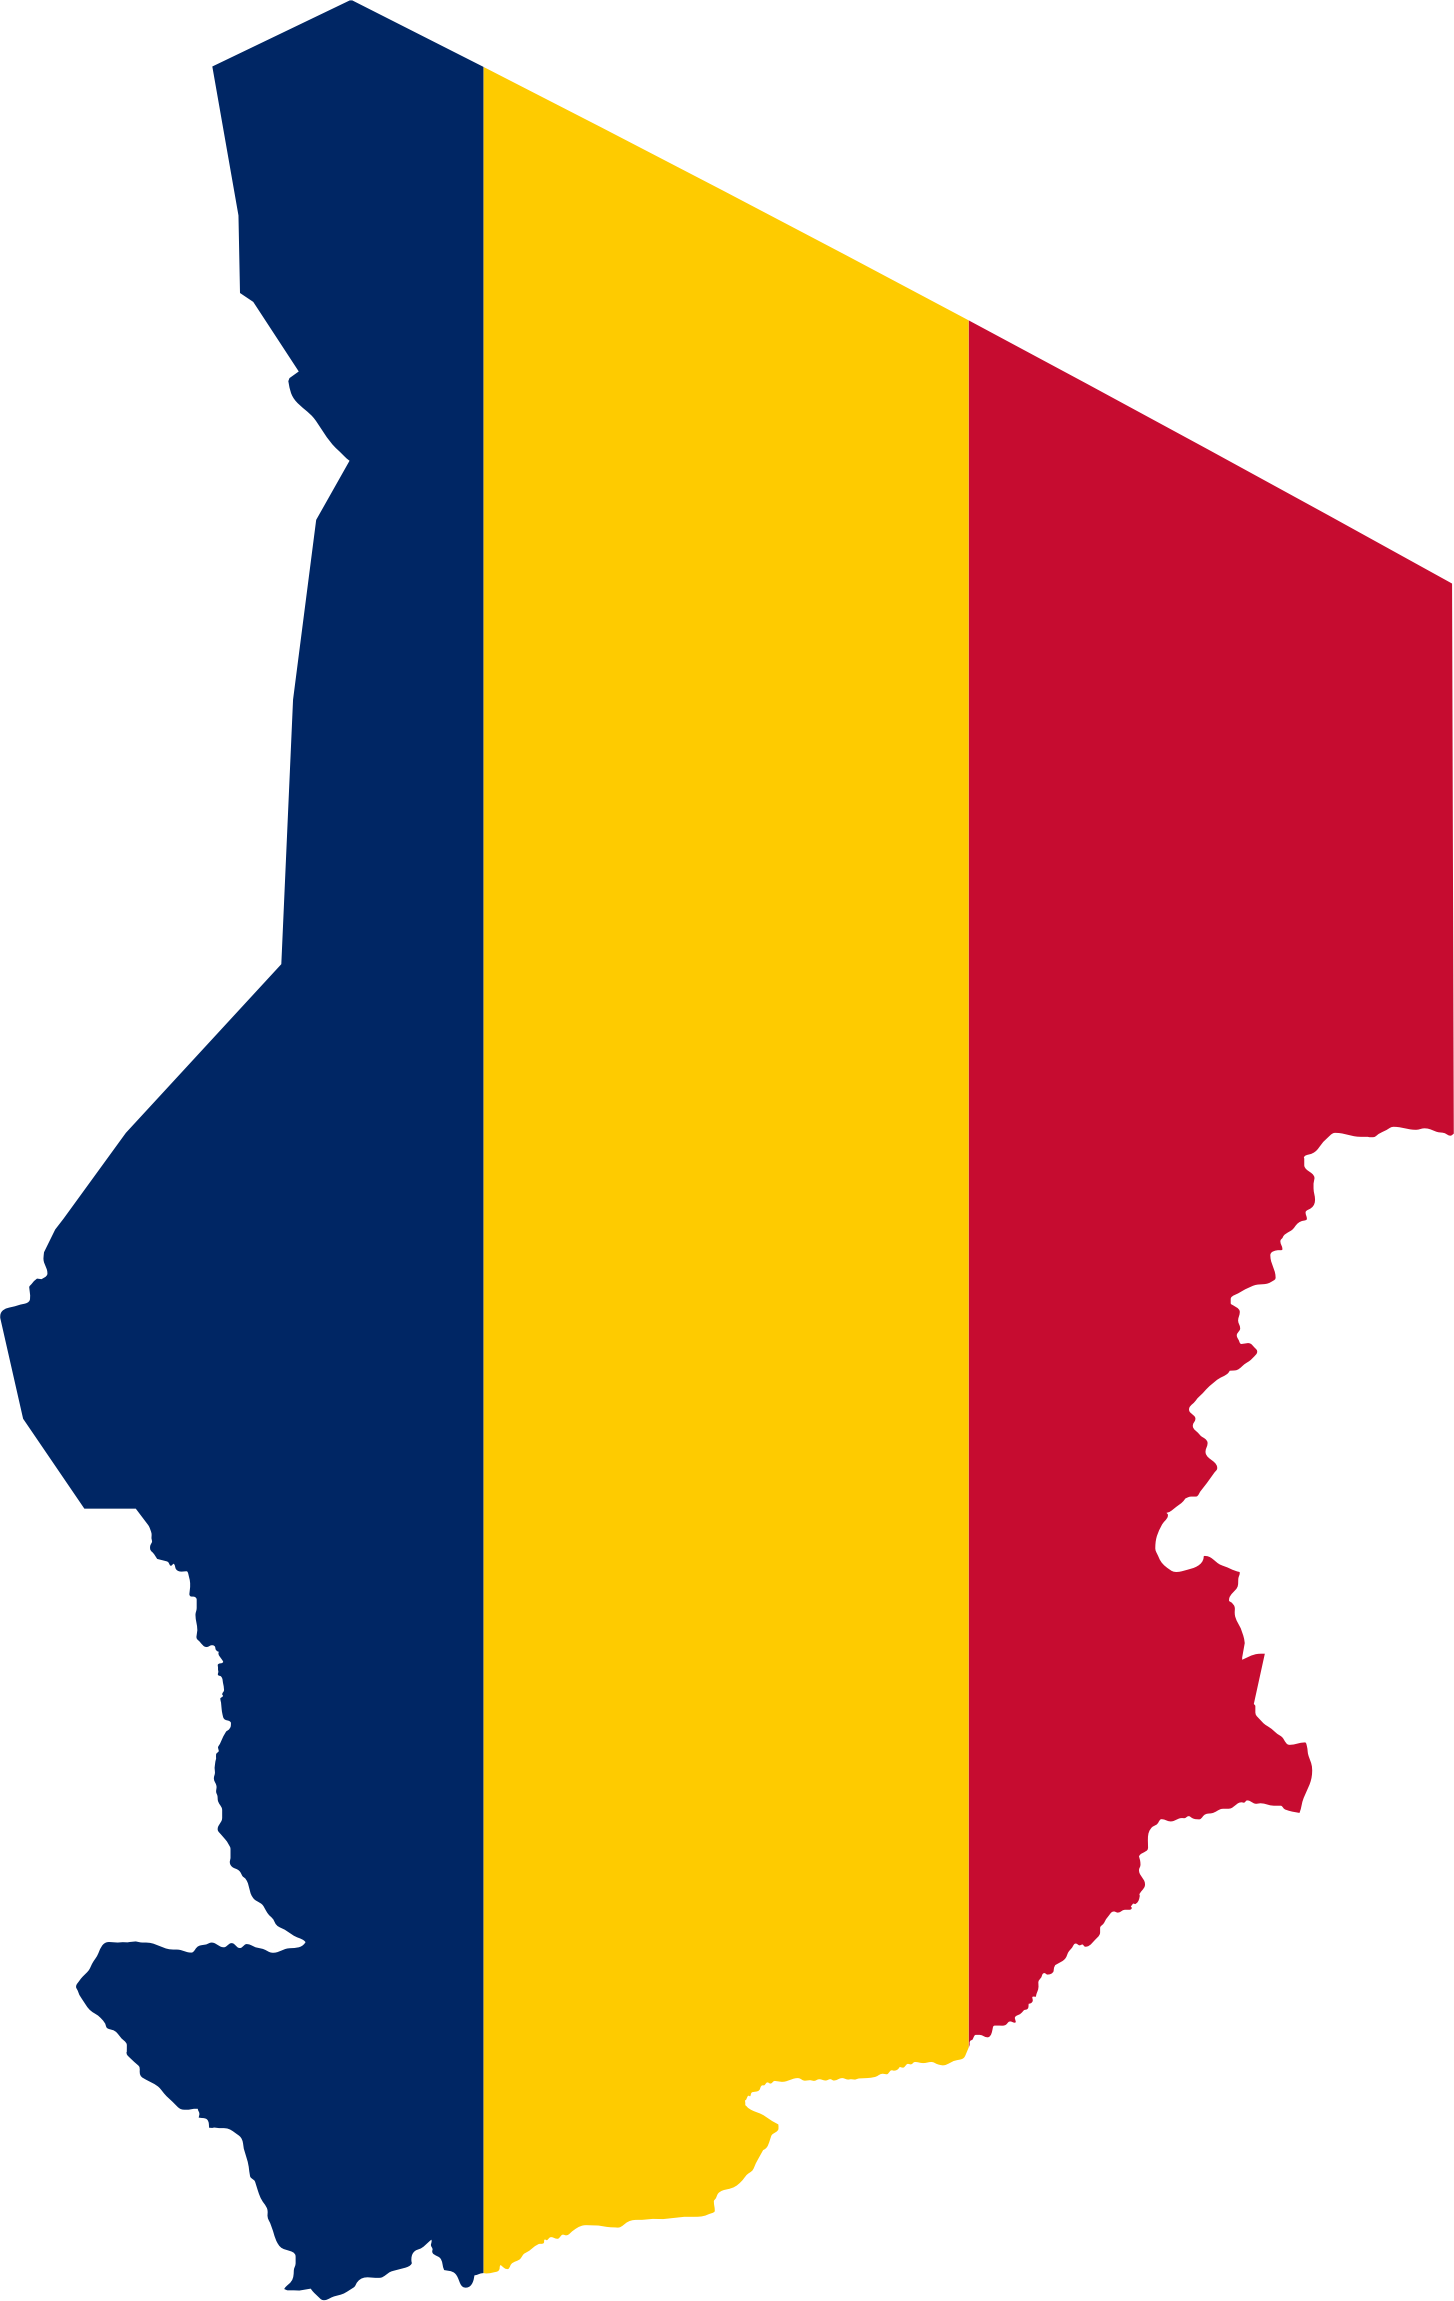 Country clipart country flag. Chad map big image